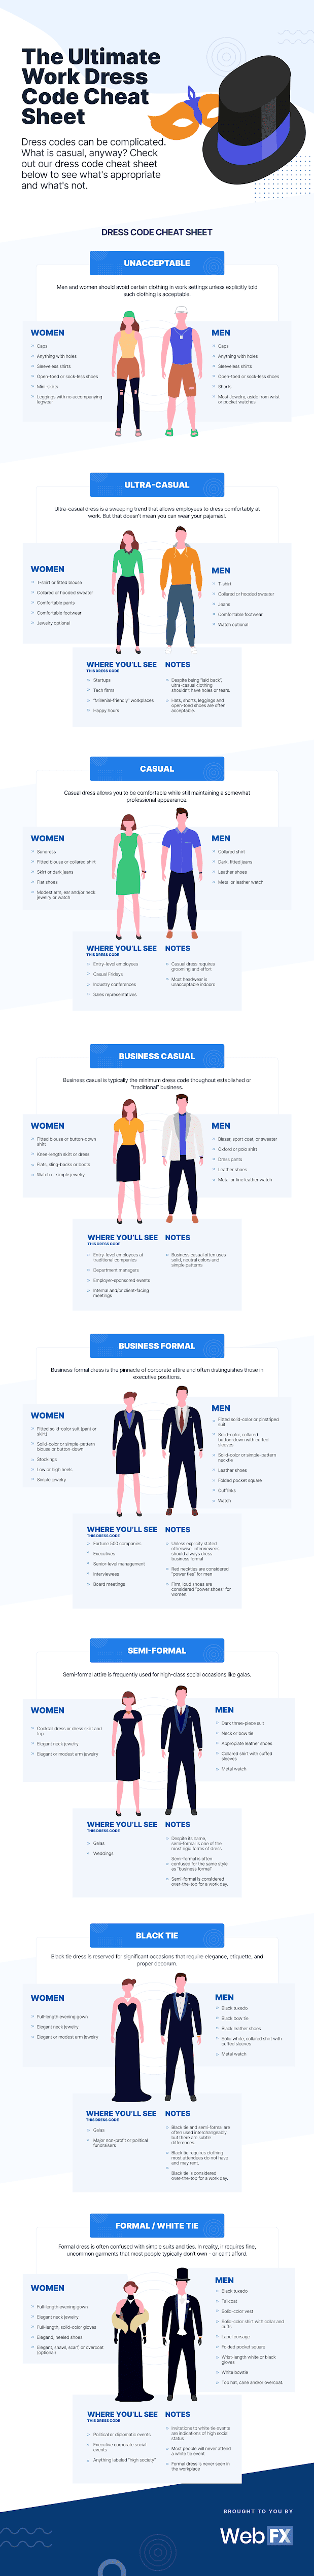 The Ultimate Work Dress Code Cheat Sheet #infographic